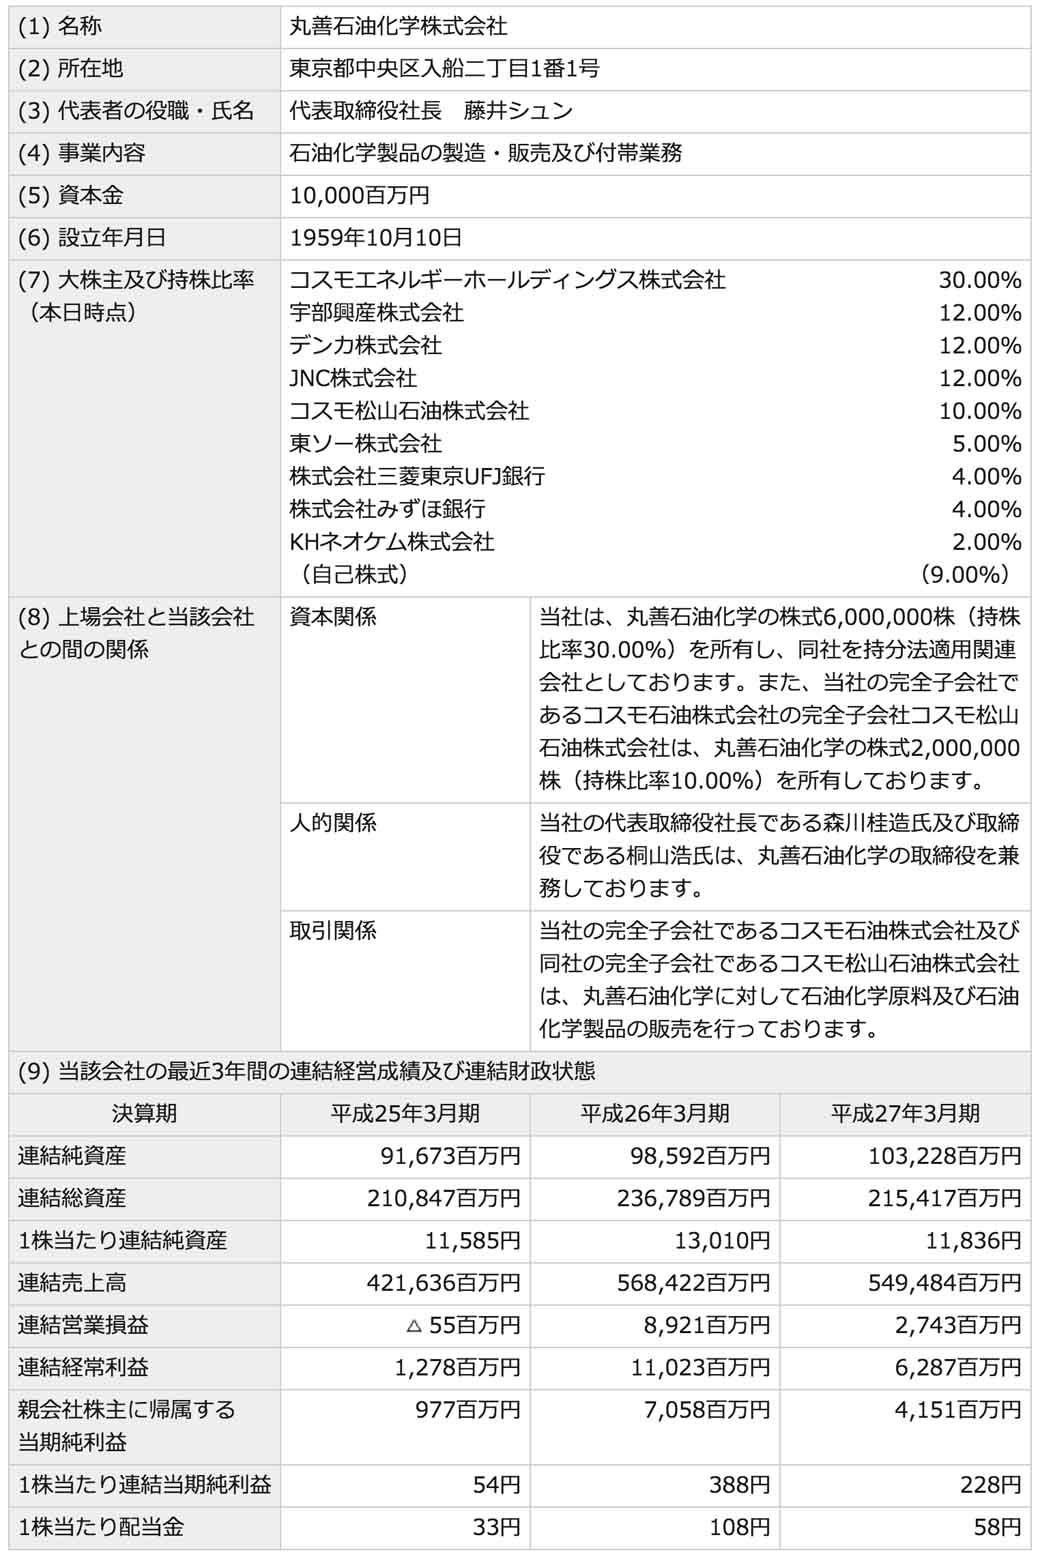 cosmo-energy-holdings-the-acquisition-of-shares-by-maruzen-petrochemical-the-subsidiary-implementation20160313-1